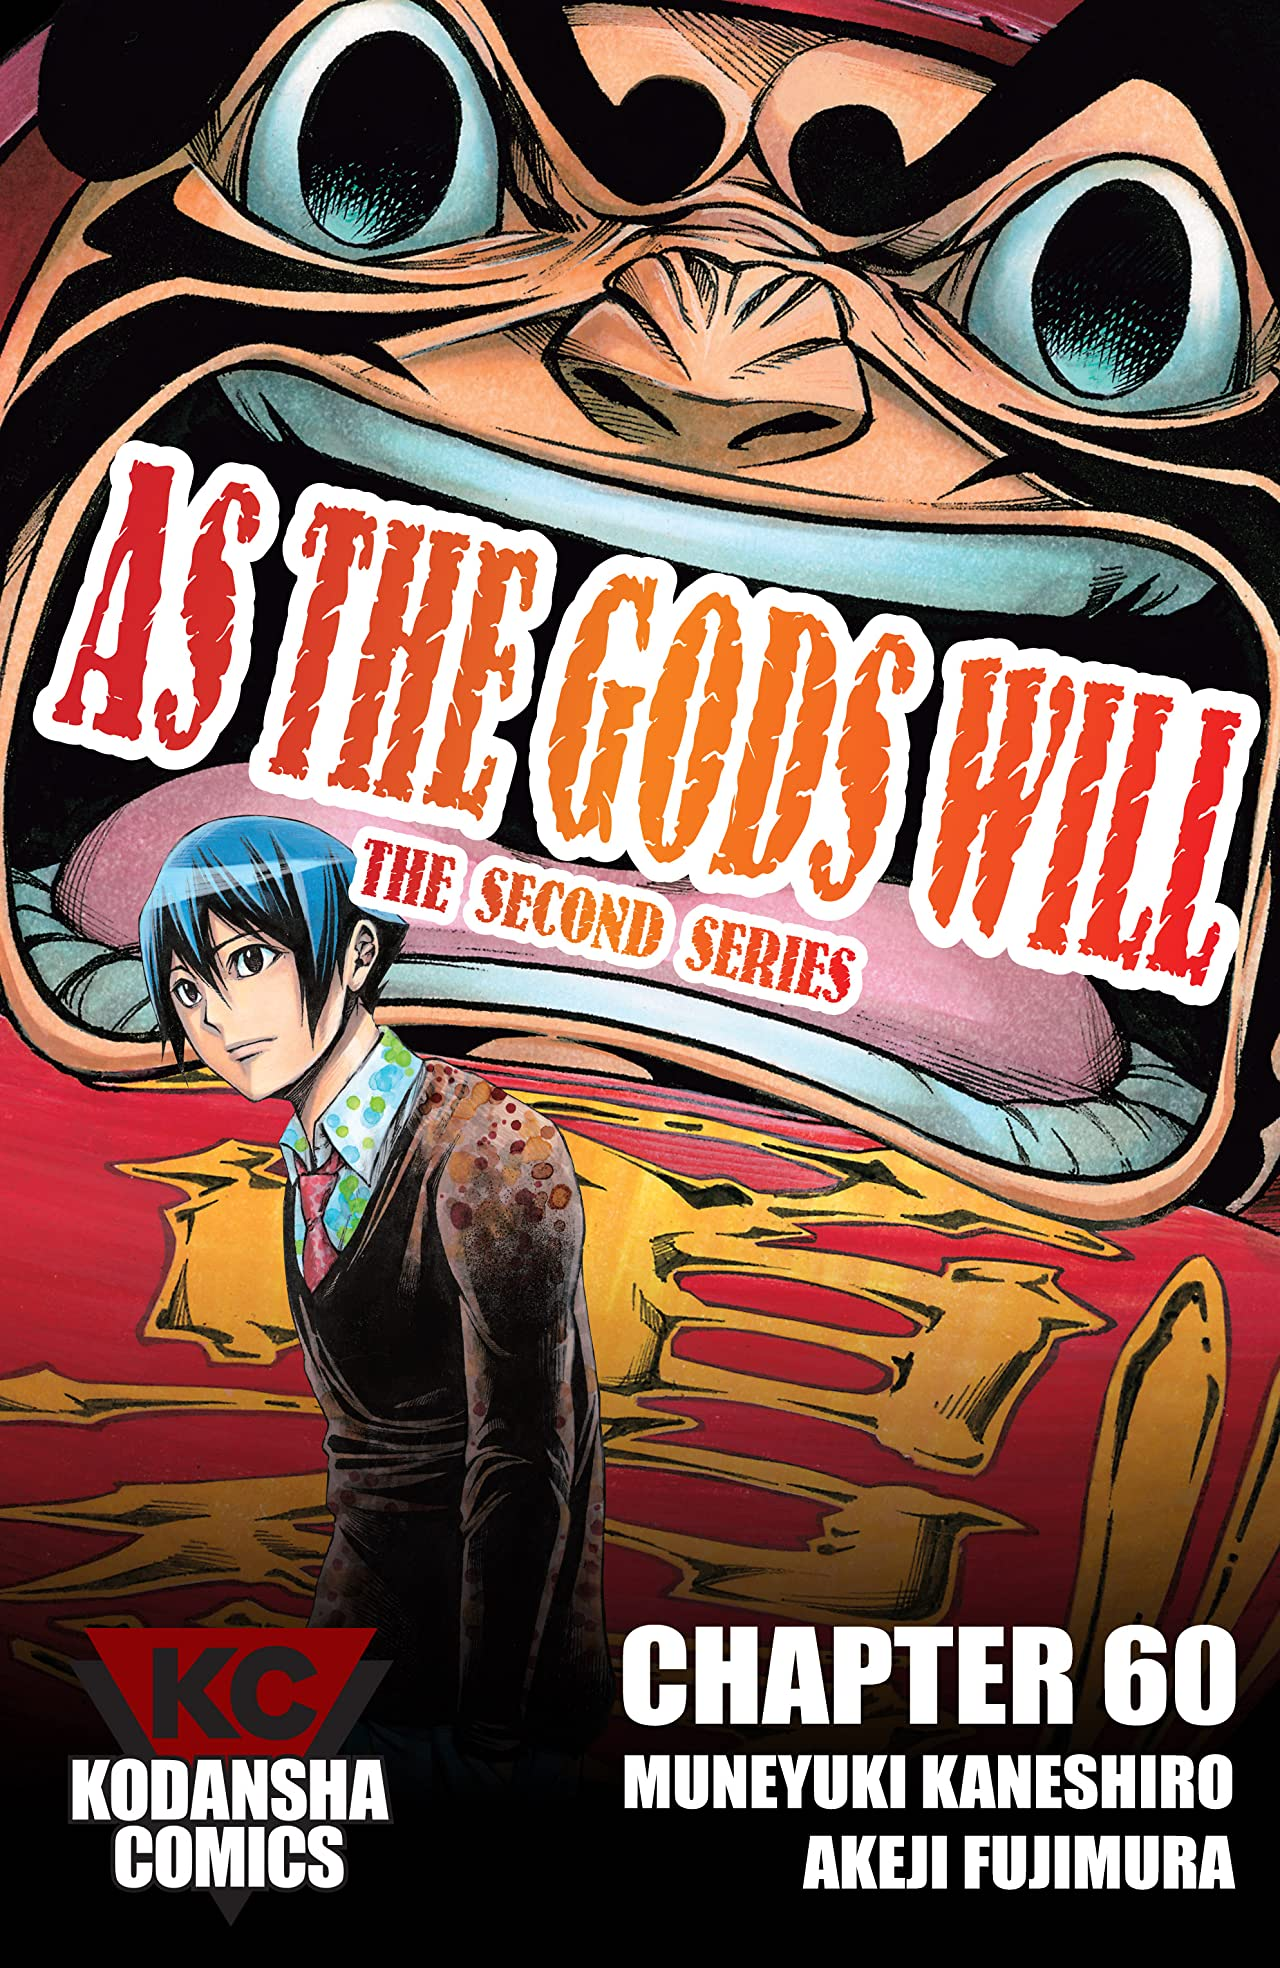 As The Gods Will: The Second Series #60